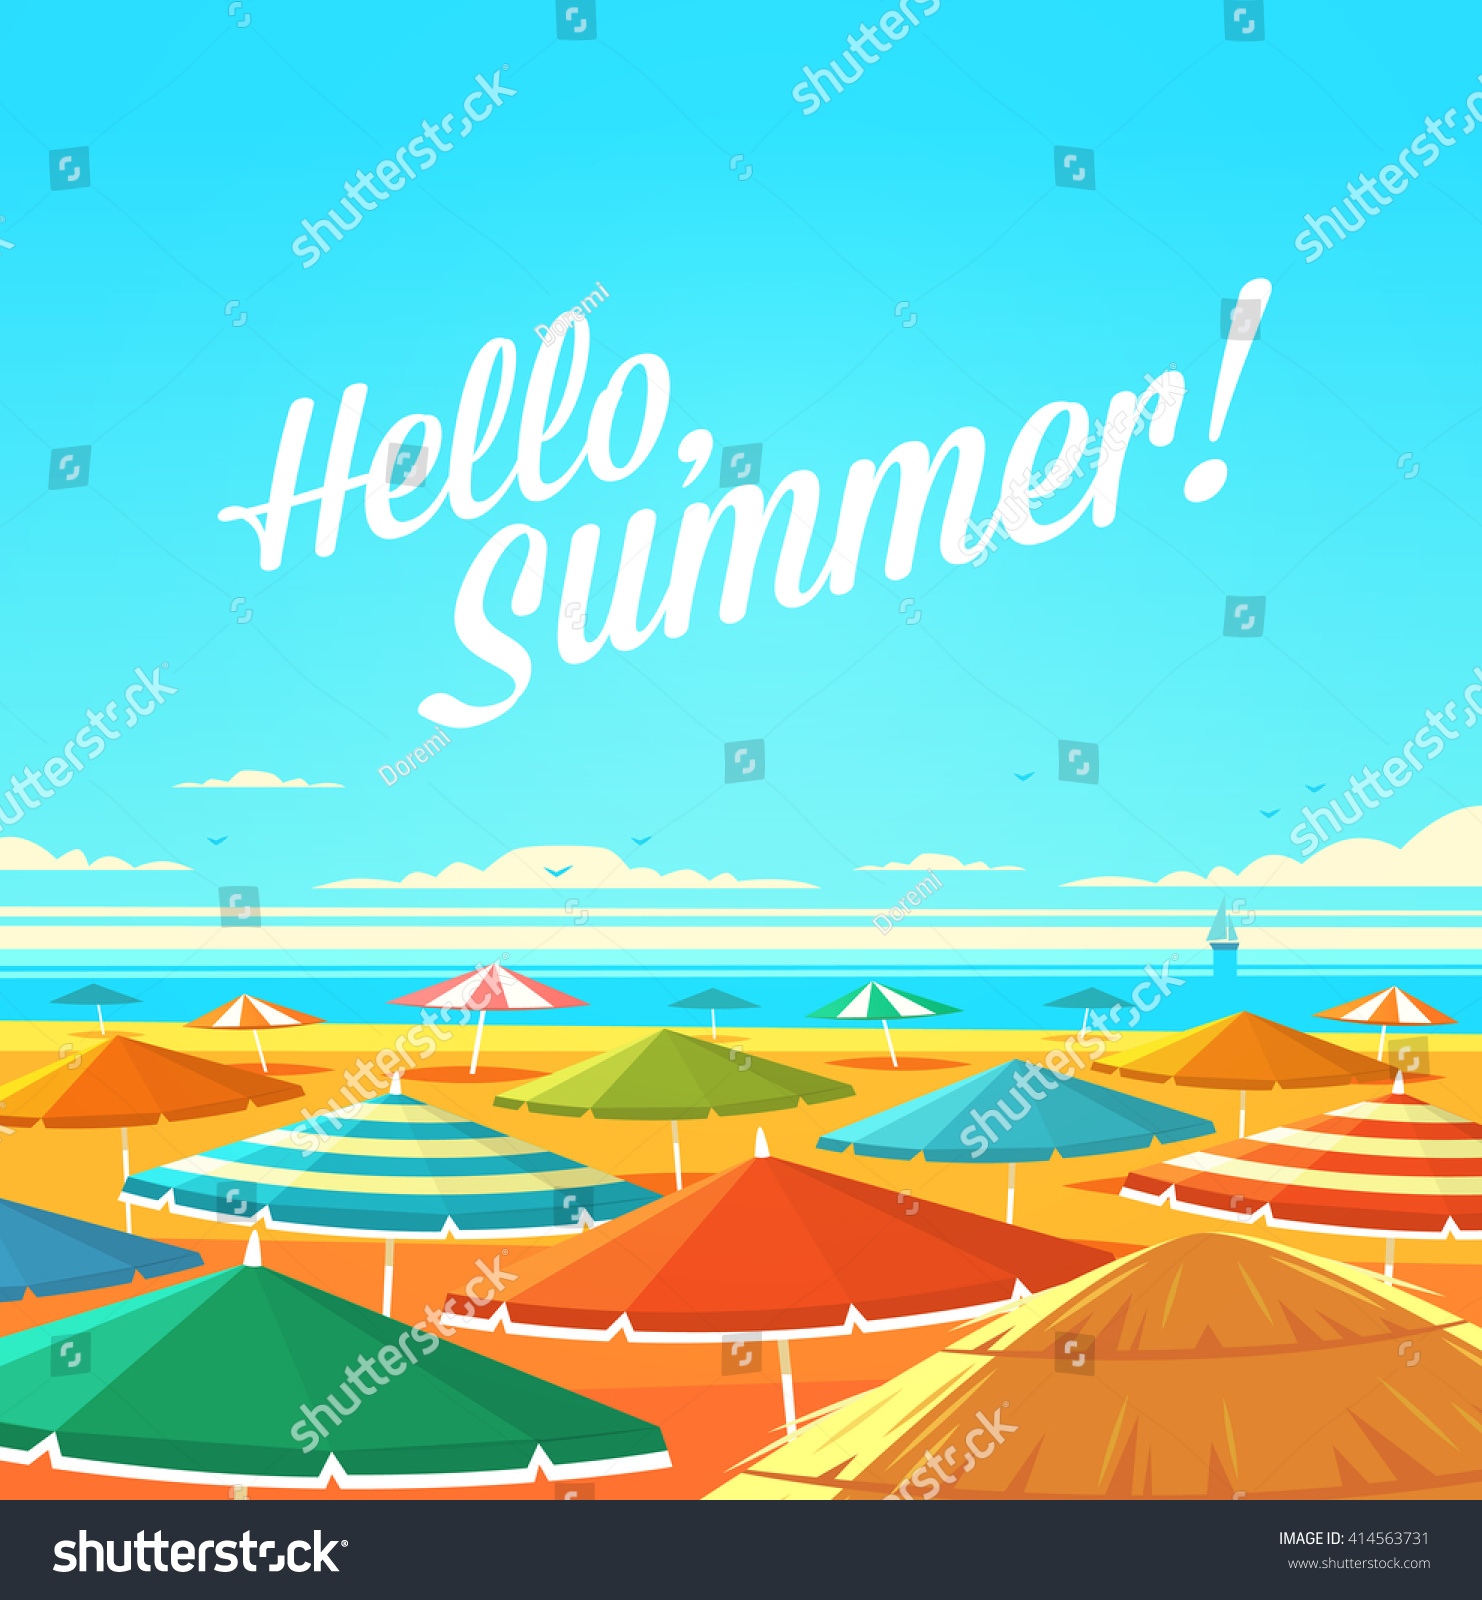 Hello, Summer! Summertime Quote. Summer Holidays Poster, Background With  Sandy Beach Full